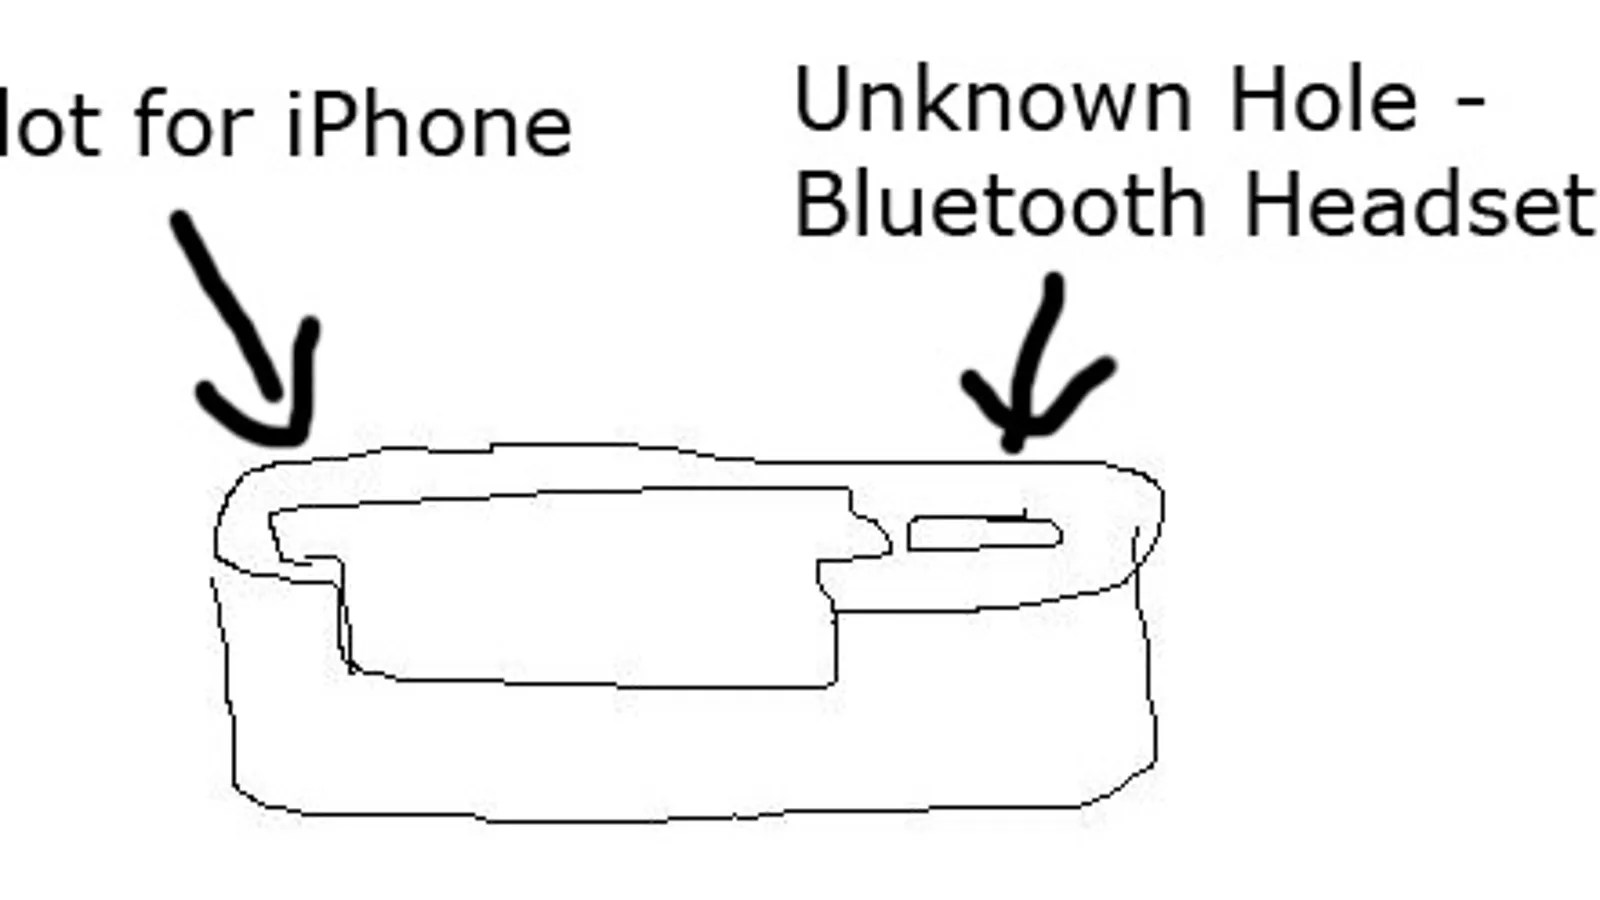 Leaked: The Apple iPhone Dock With Bluetooth Headset Hole